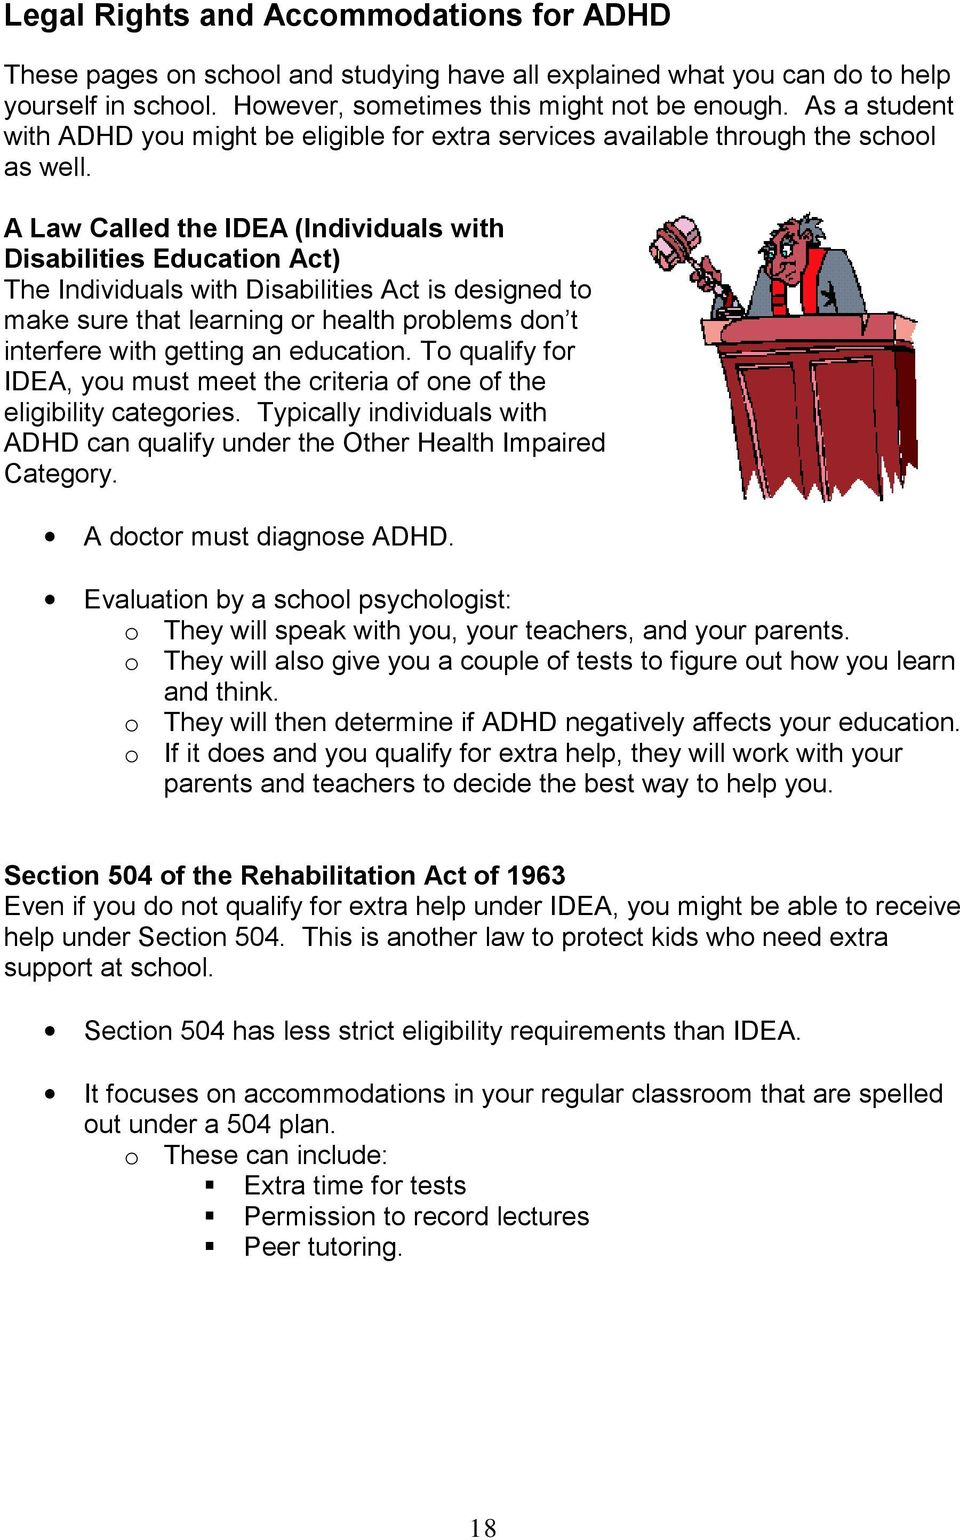 A Law Called the IDEA (Individuals with Disabilities Education Act) The Individuals with Disabilities Act is designed to make sure that learning or health problems don t interfere with getting an